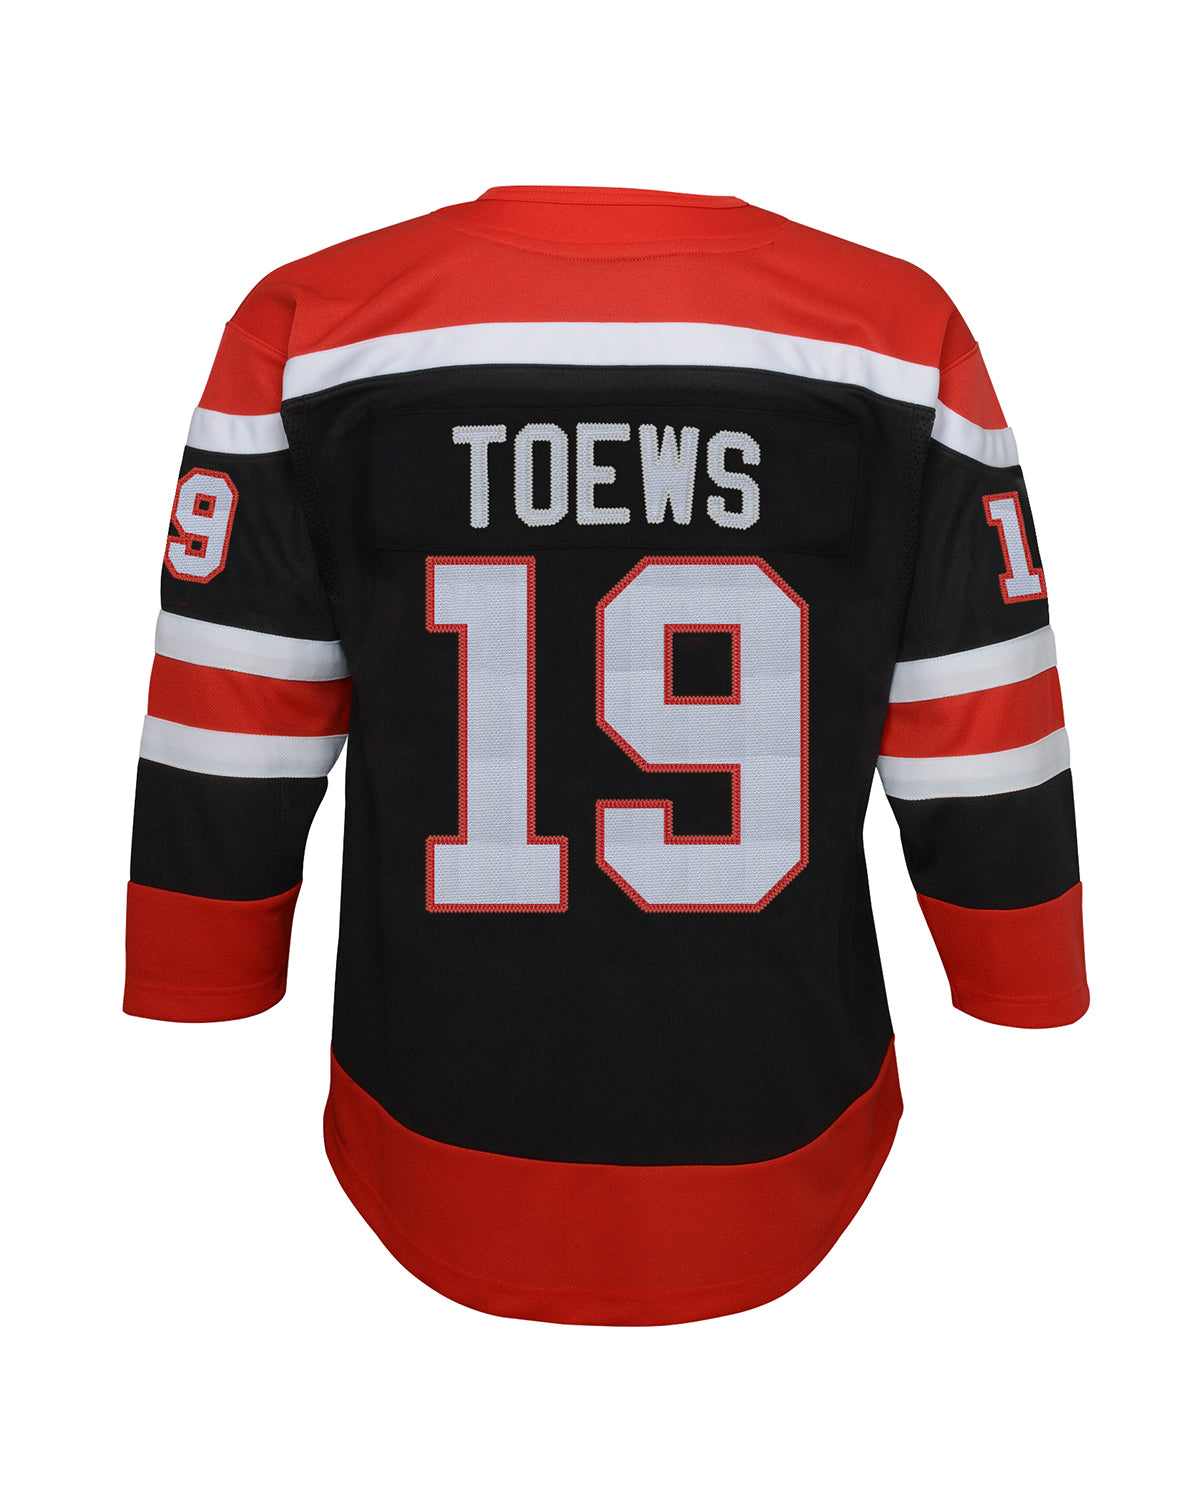 Youth Outerstuff Toews Special Edition Premier Jersey